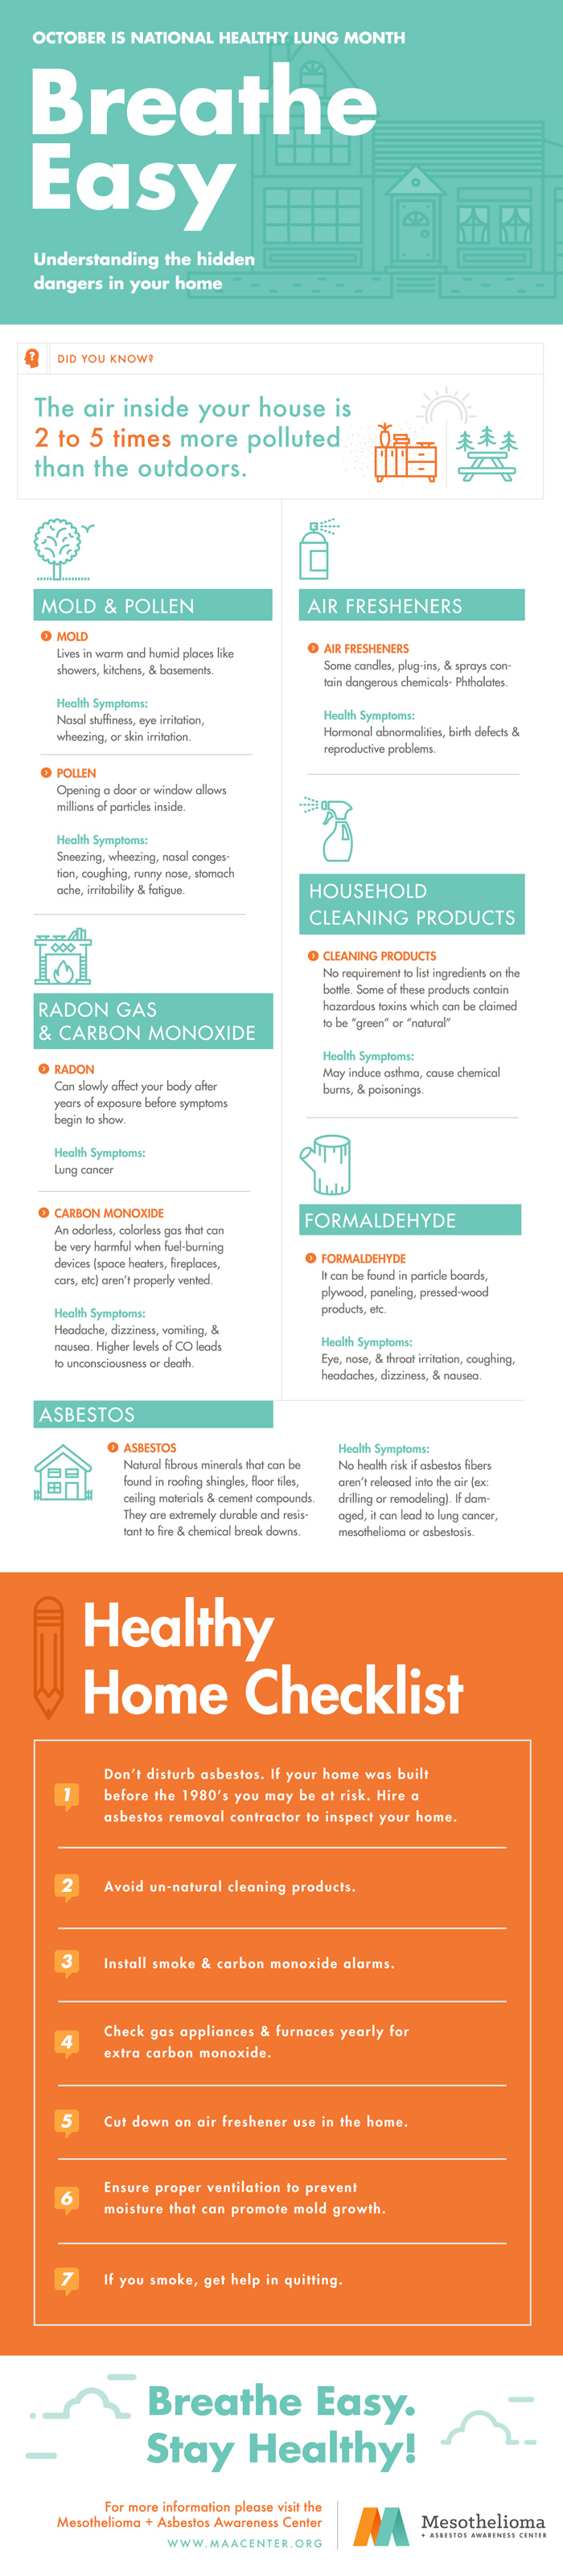 Breathing Tips for National Healthy Lung Month